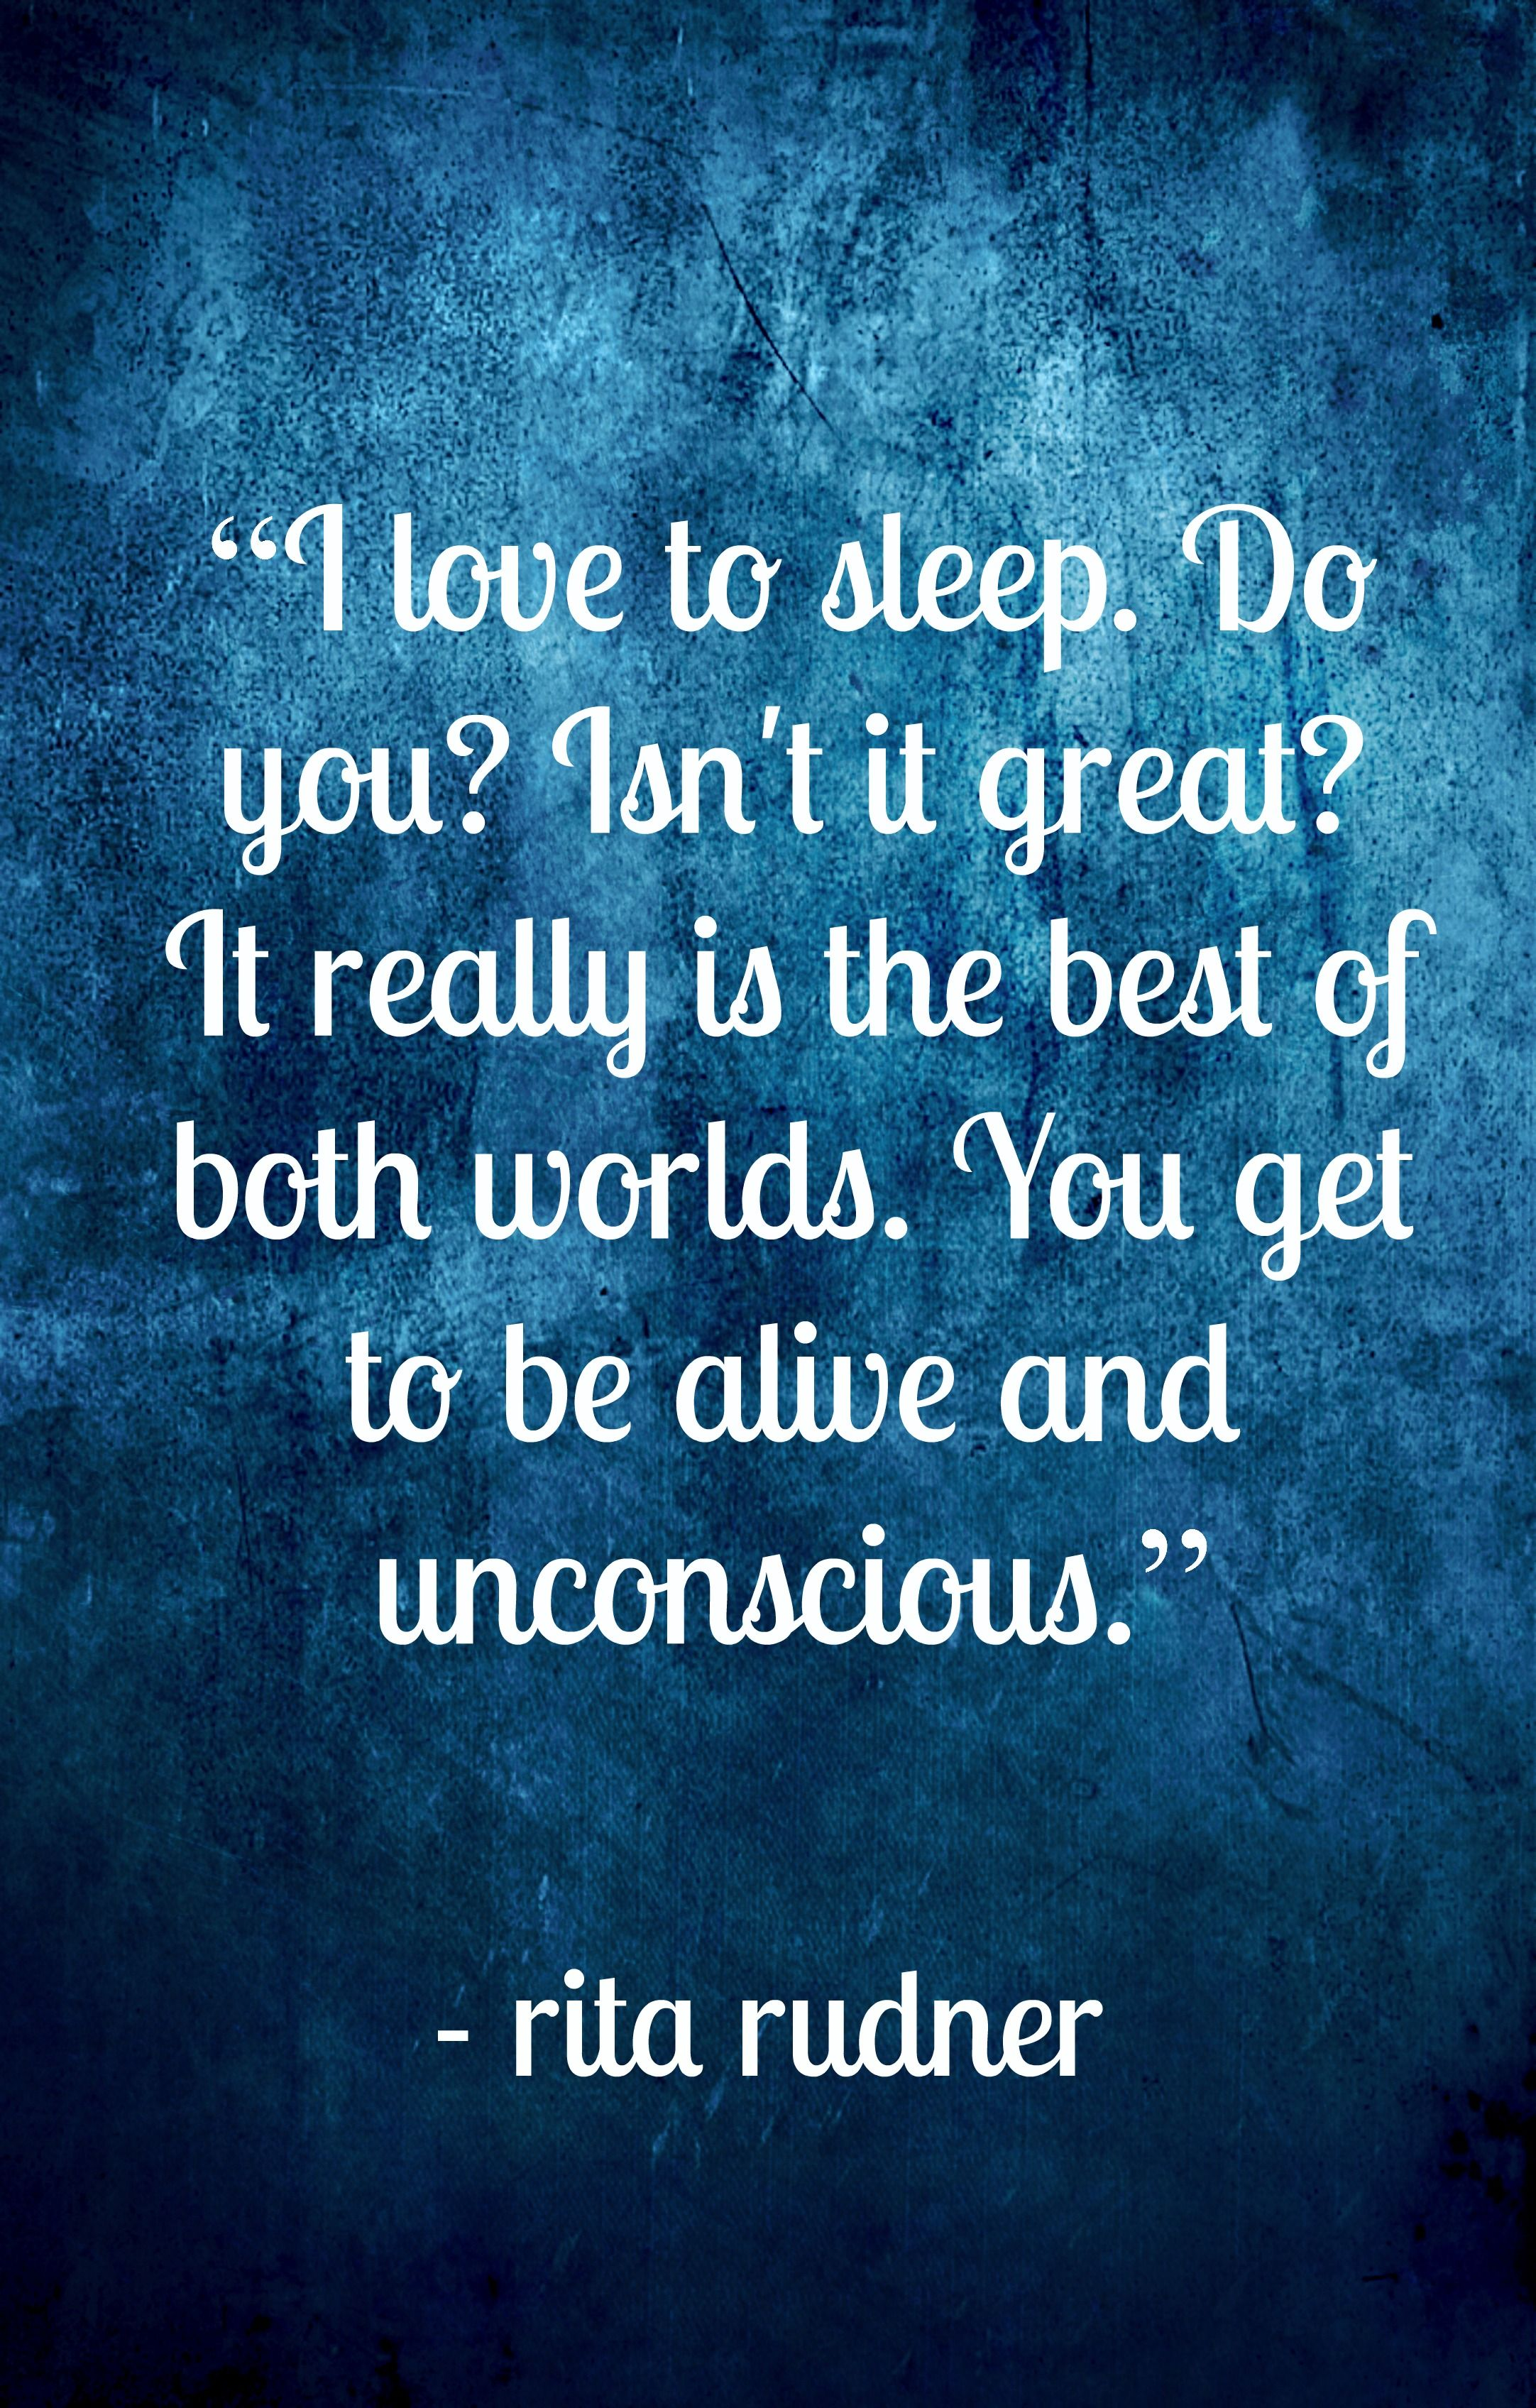 Thoughtful Quotes Rita Rudner Quotes  Wisdom Pinterest  Thoughts Eye Opening